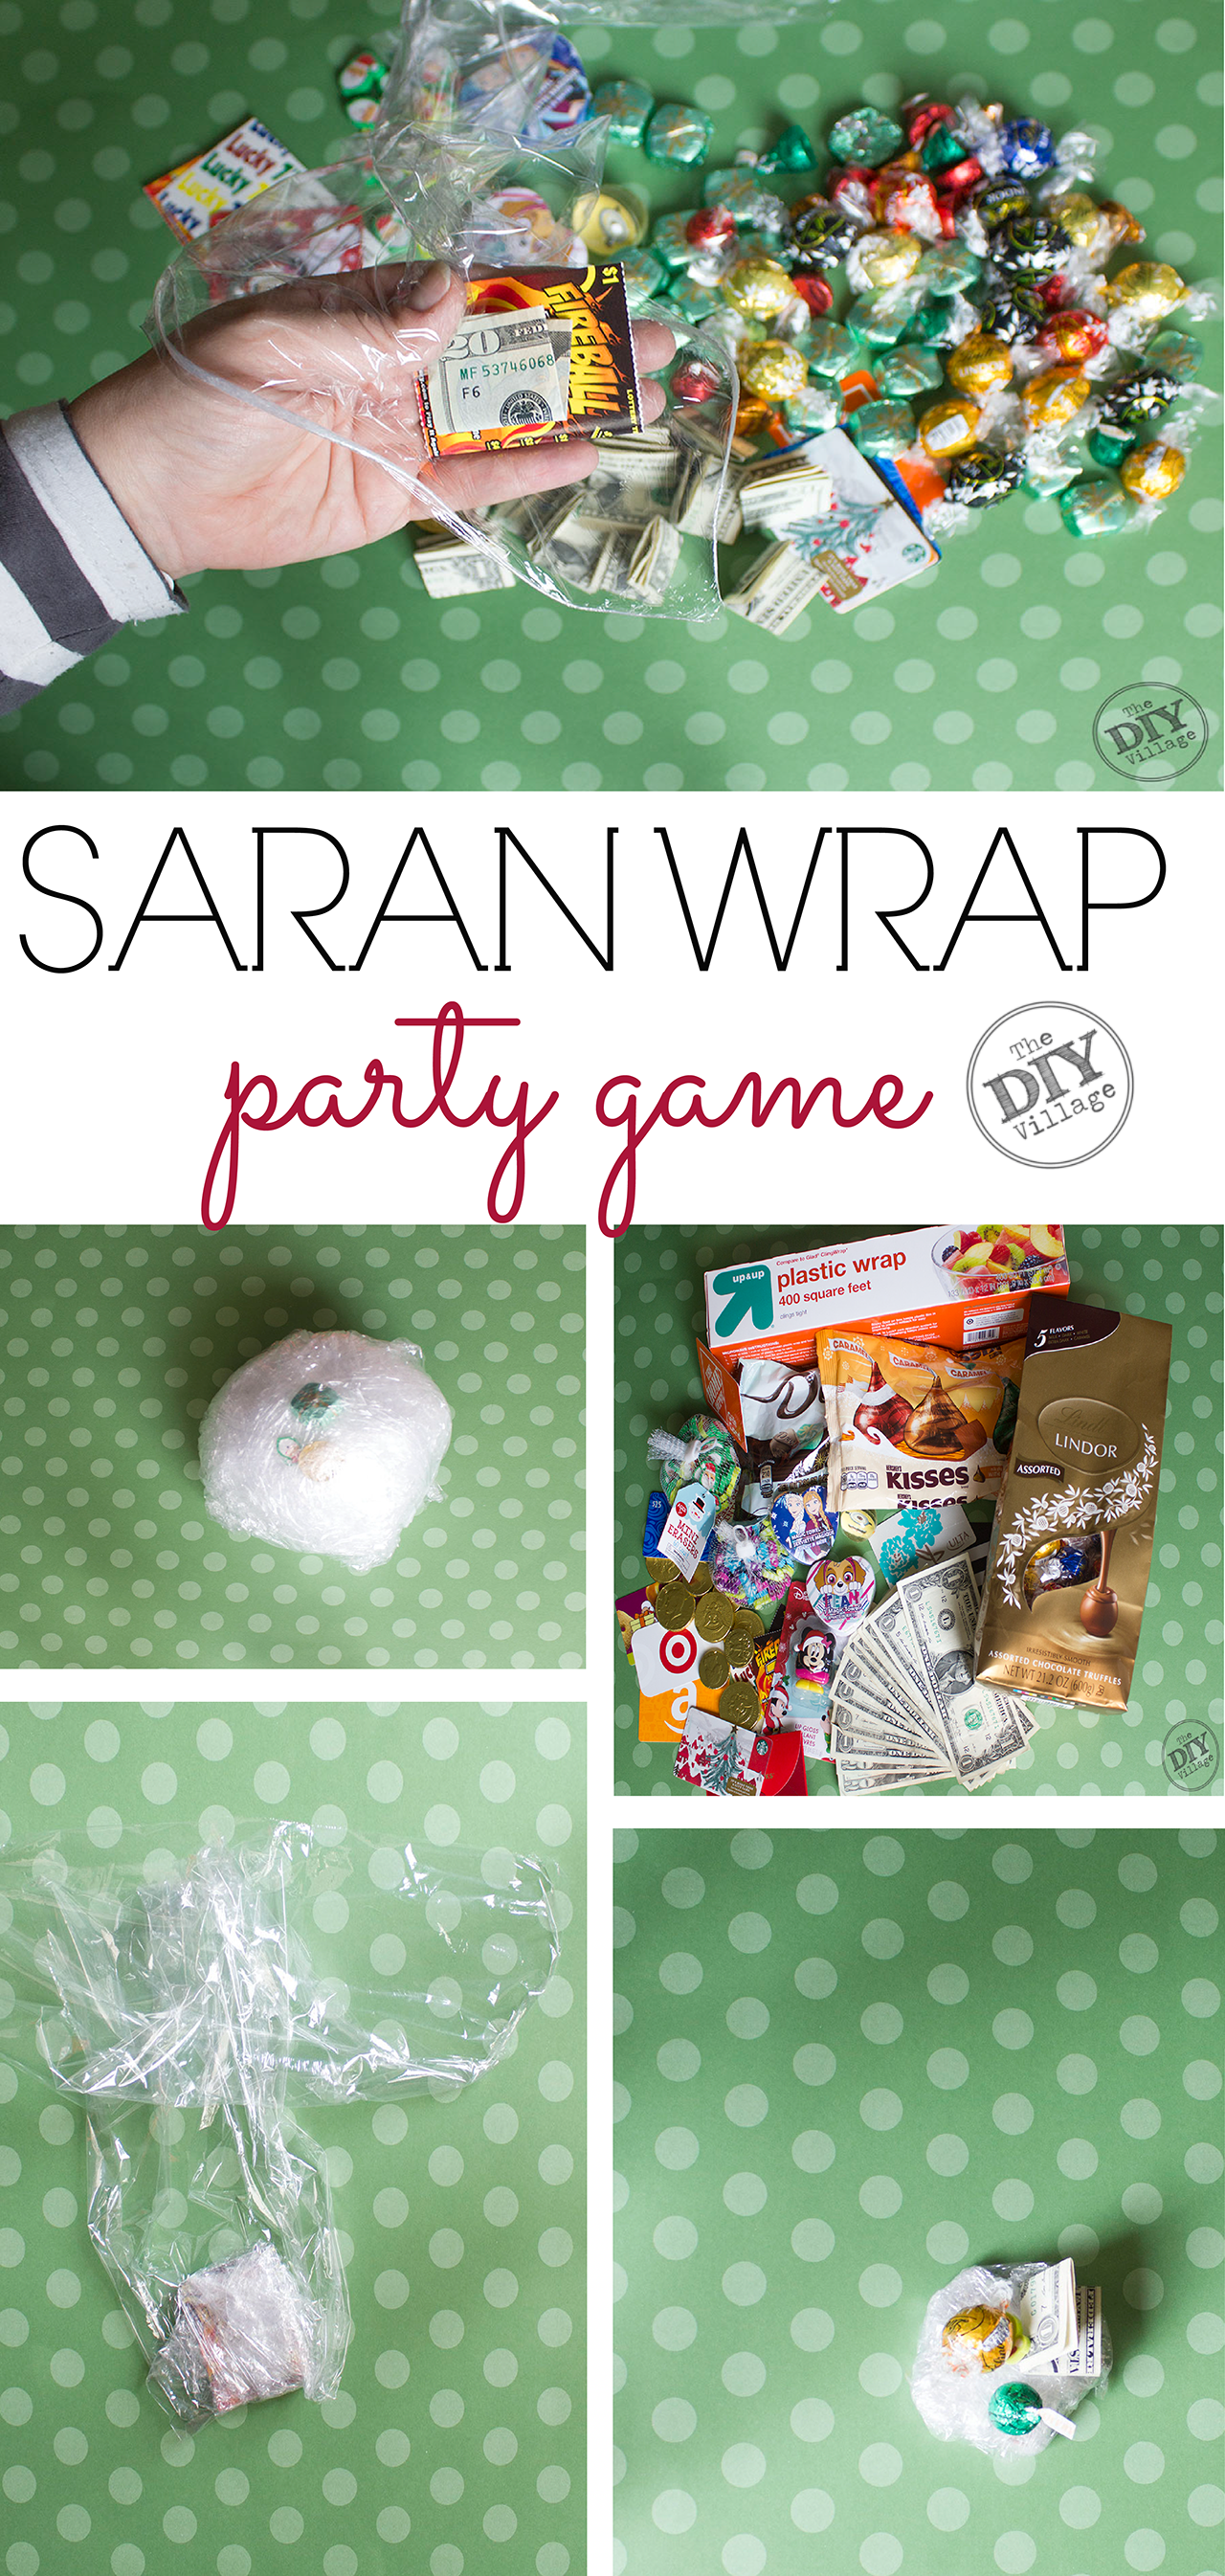 How to play the saran wrap party game, including instructions. A must for your next get together!